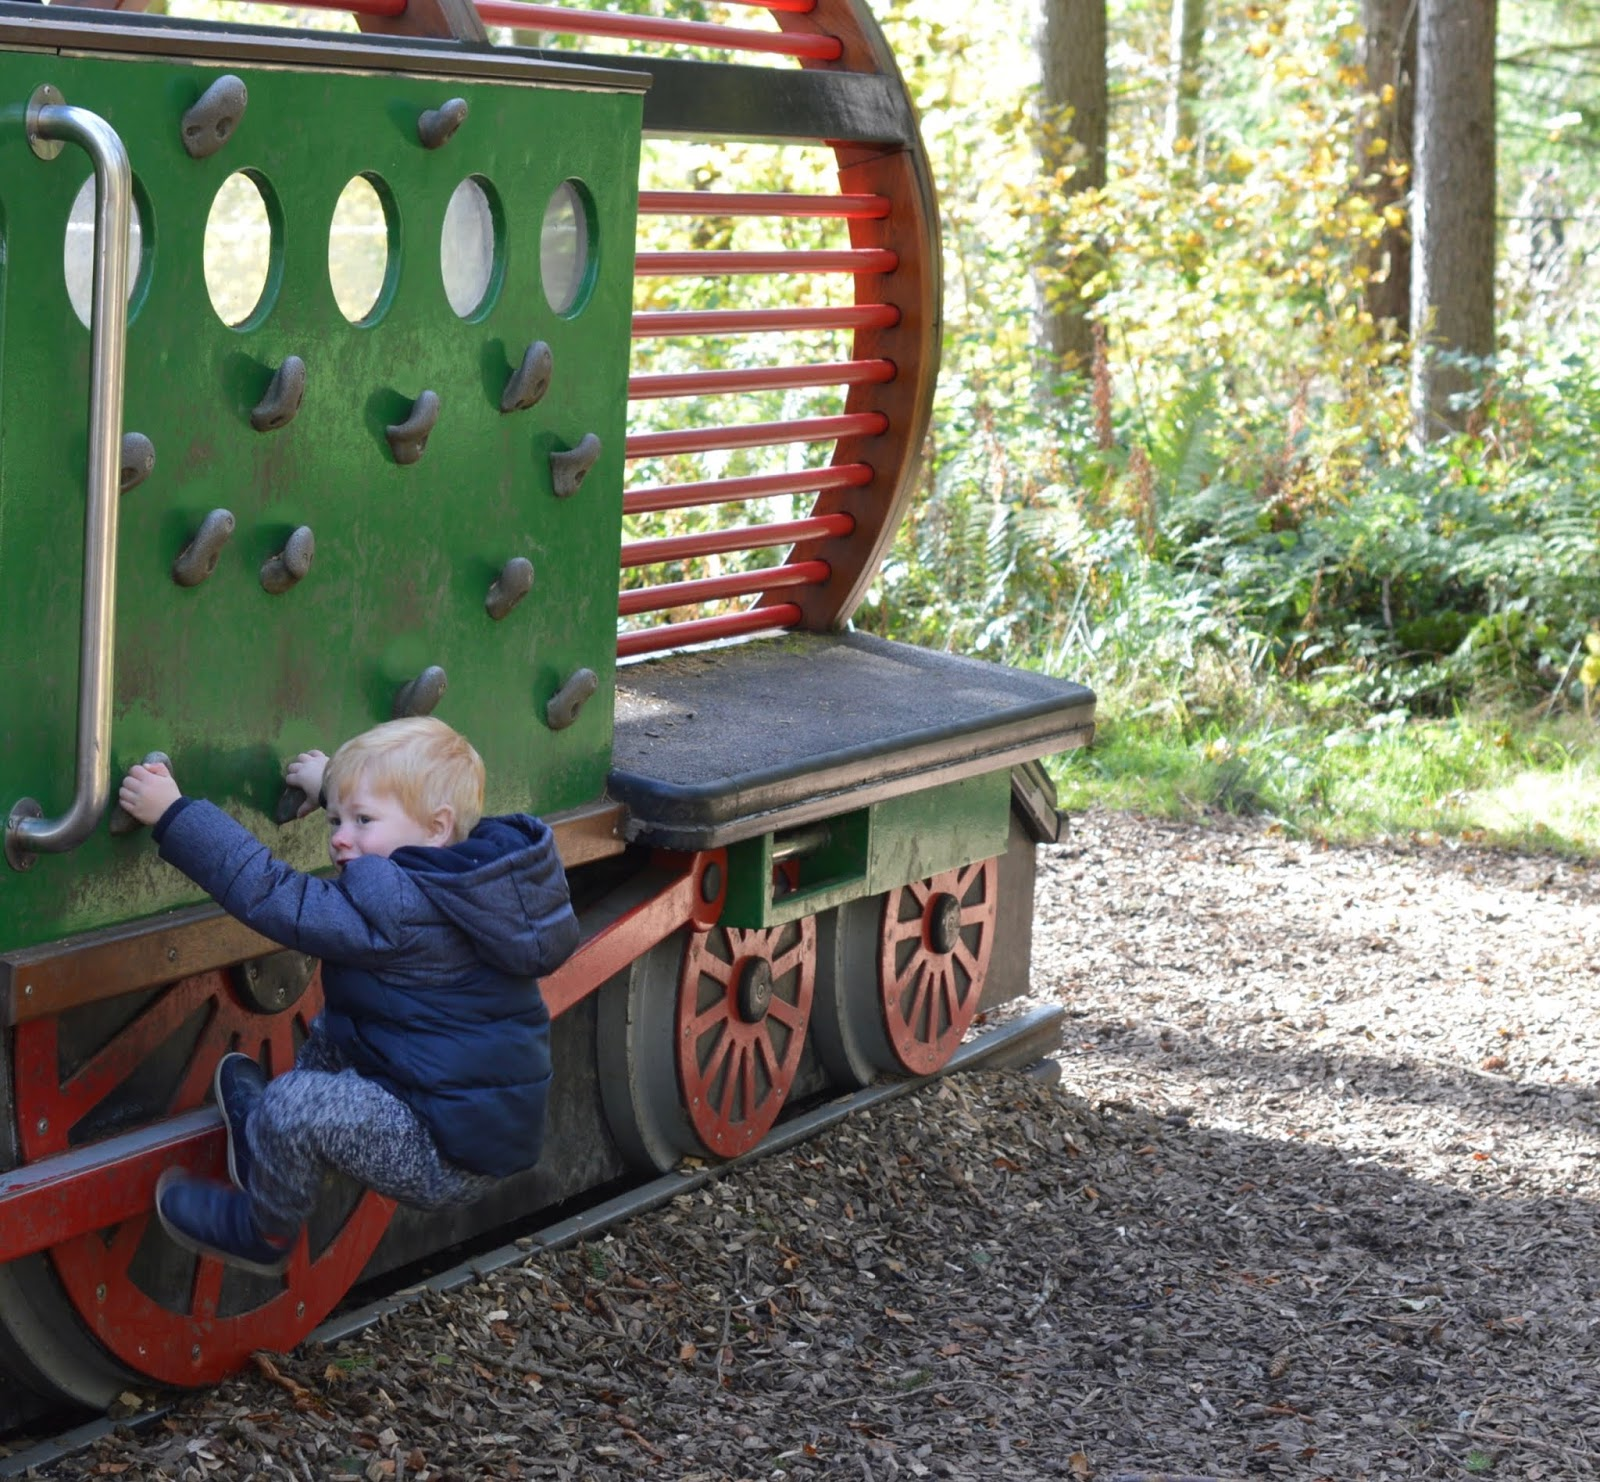 Visiting the Adventure Playground & Outdoor Play Areas at Wallington Hall  - toddler climbing on train